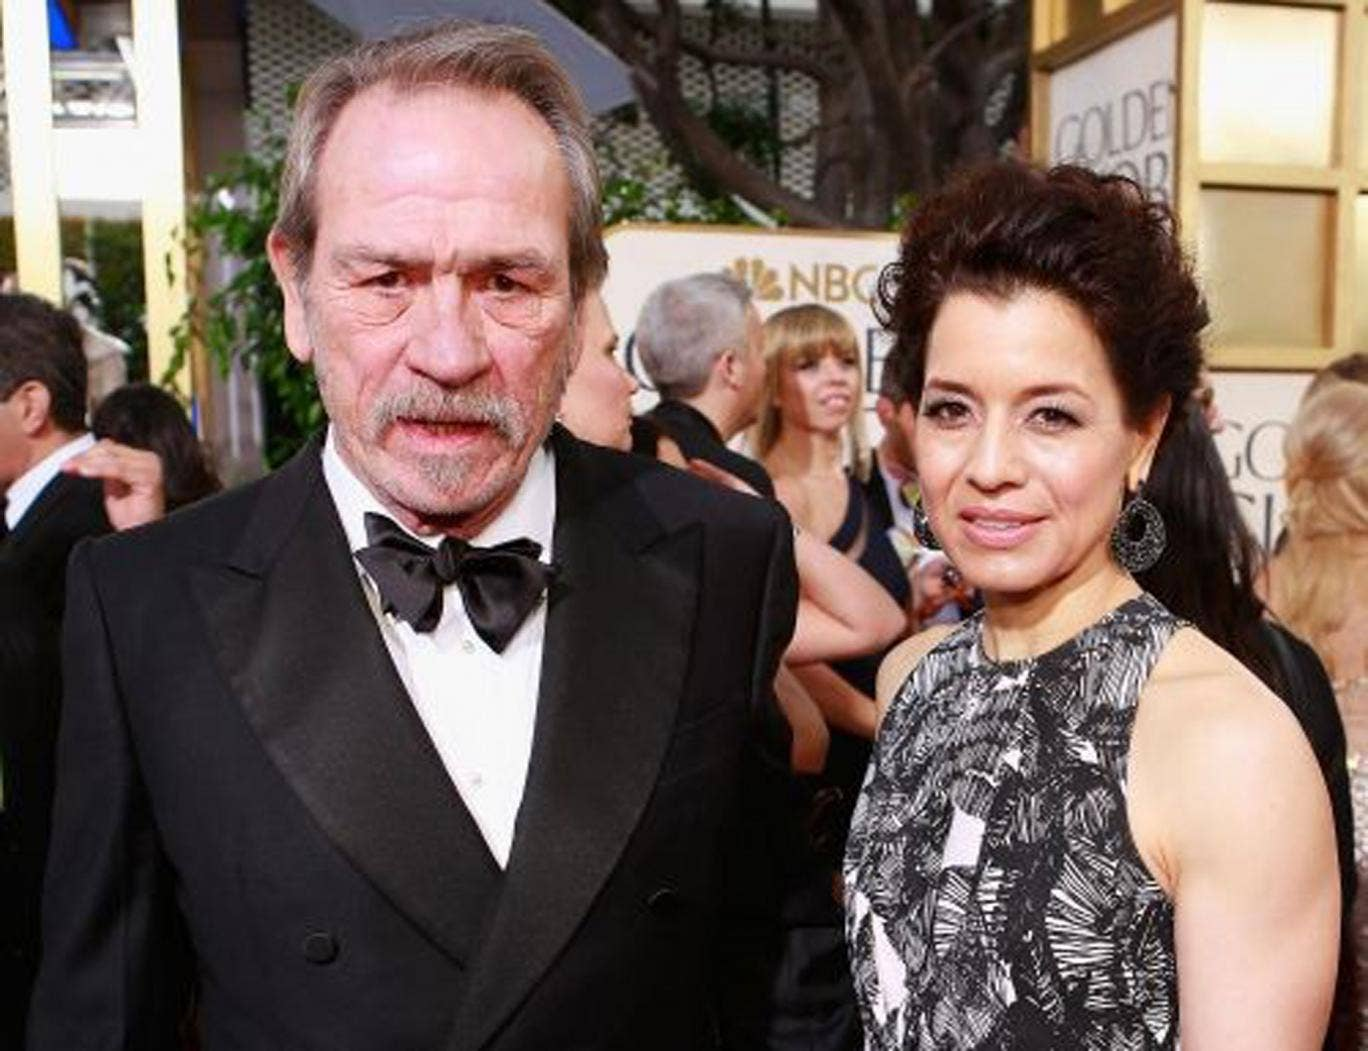 The Award for Best Face at the Golden Globes went to Tommy Lee Jones